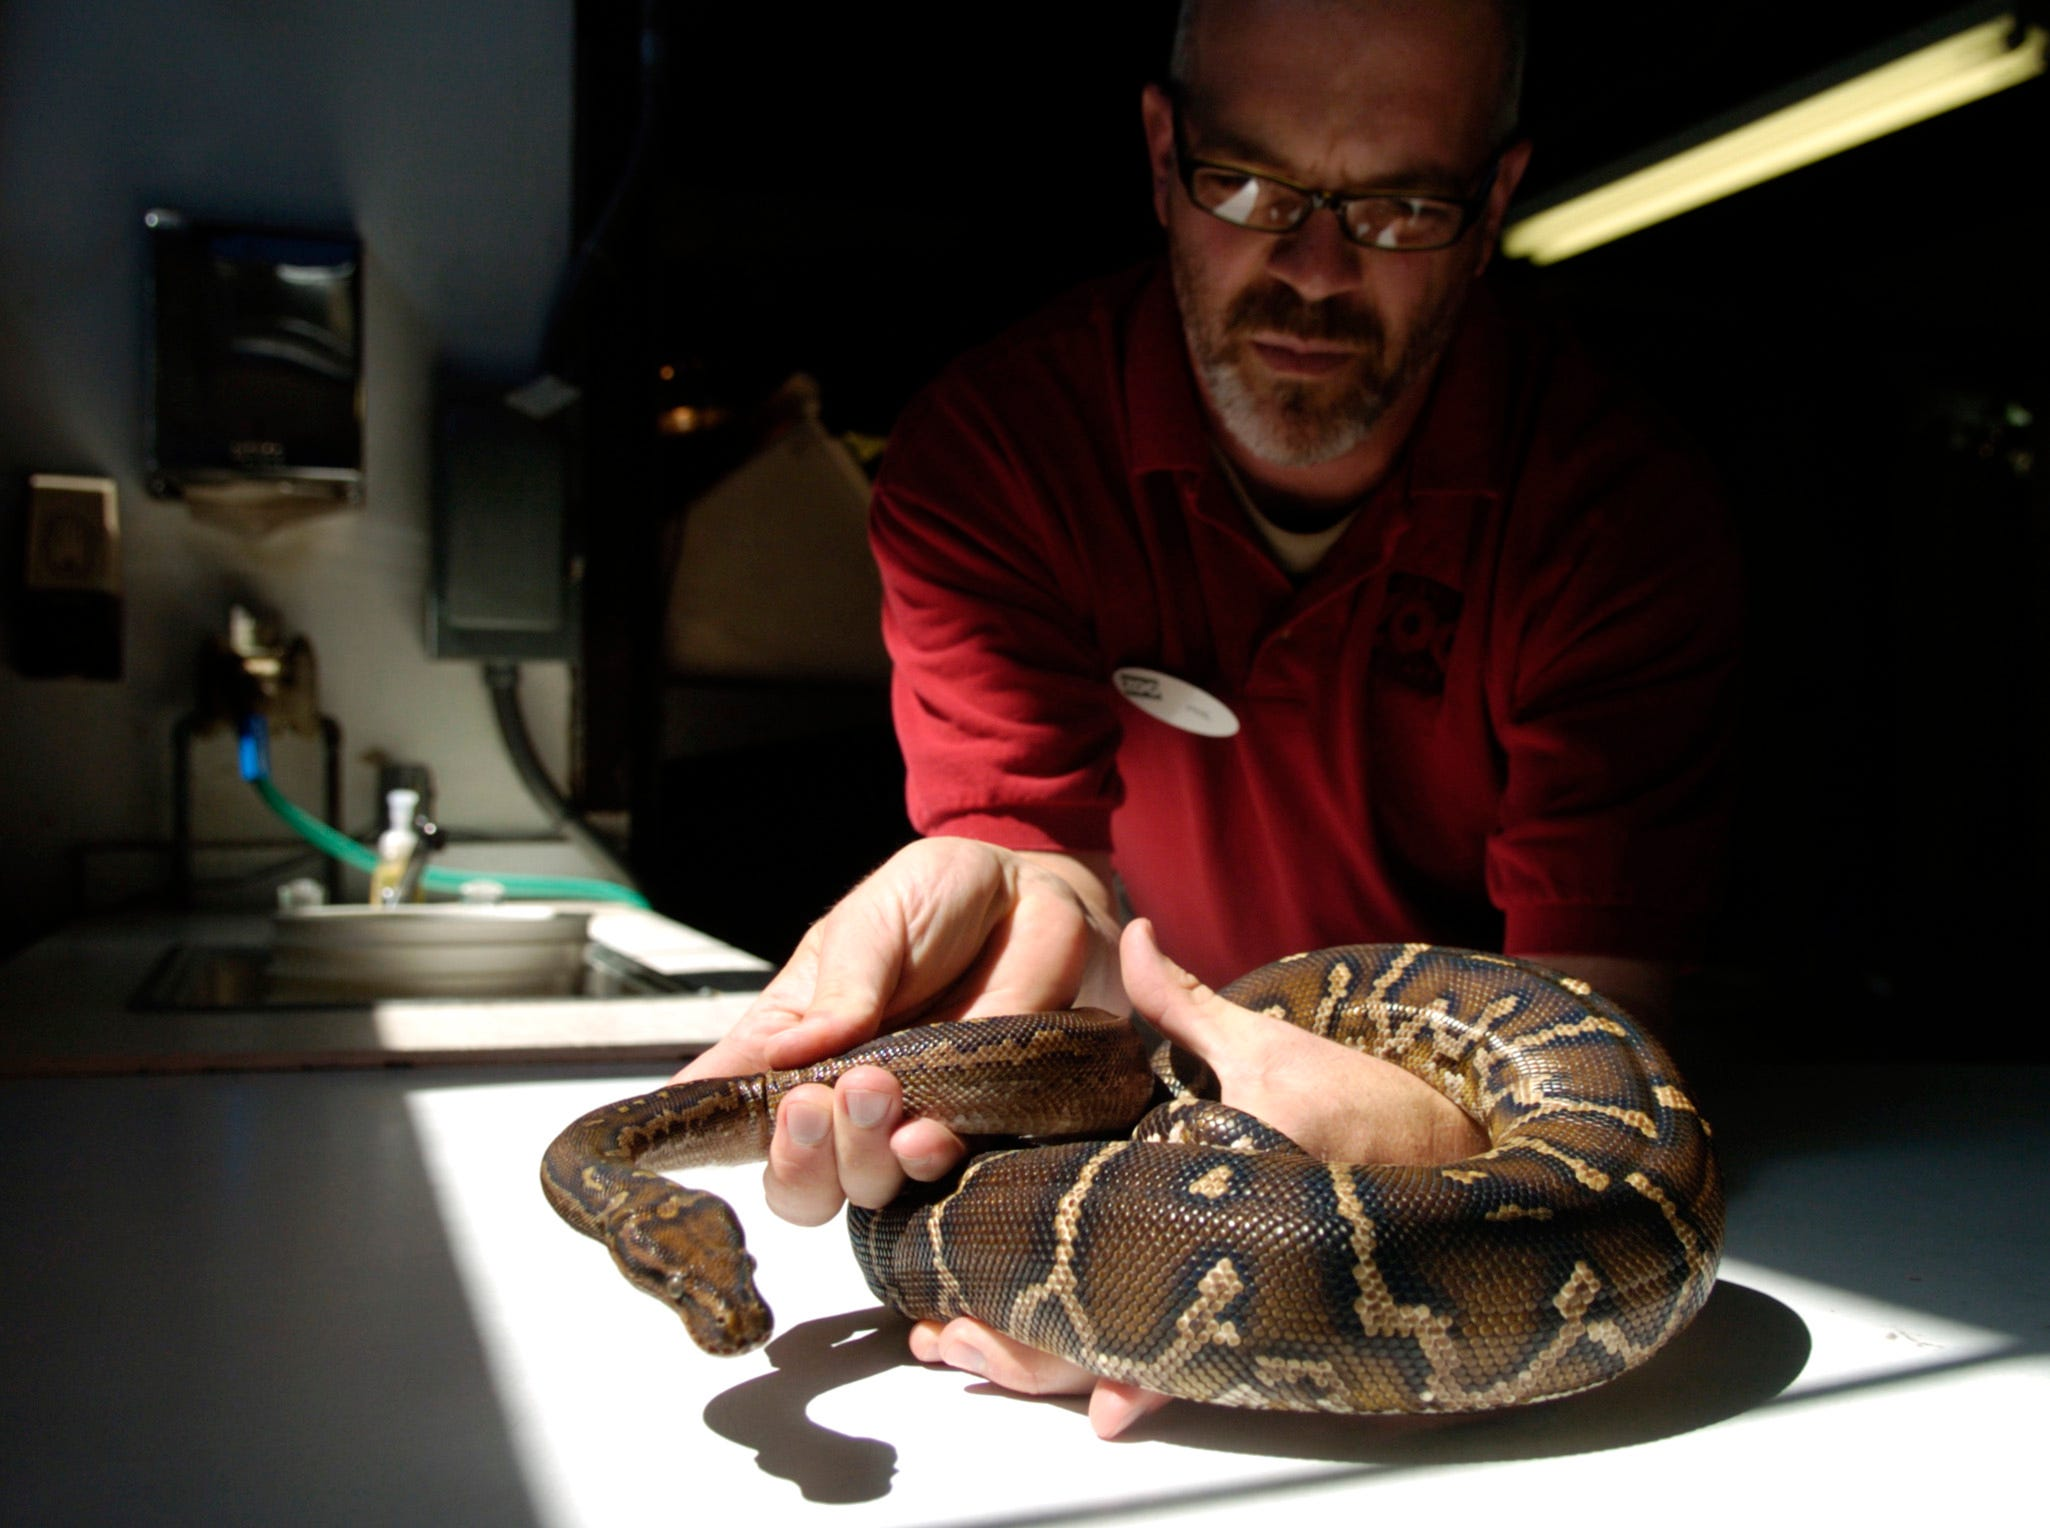 Phil Colclough is the assistant curator of herpetology, the branch of zoology that studies reptiles and amphibians, at the Knoxville Zoo. He holds an Angolan Python under the sunlight, though not poisonous, snakes will still bite when not handled properly. Tuesday, September 4, 2007